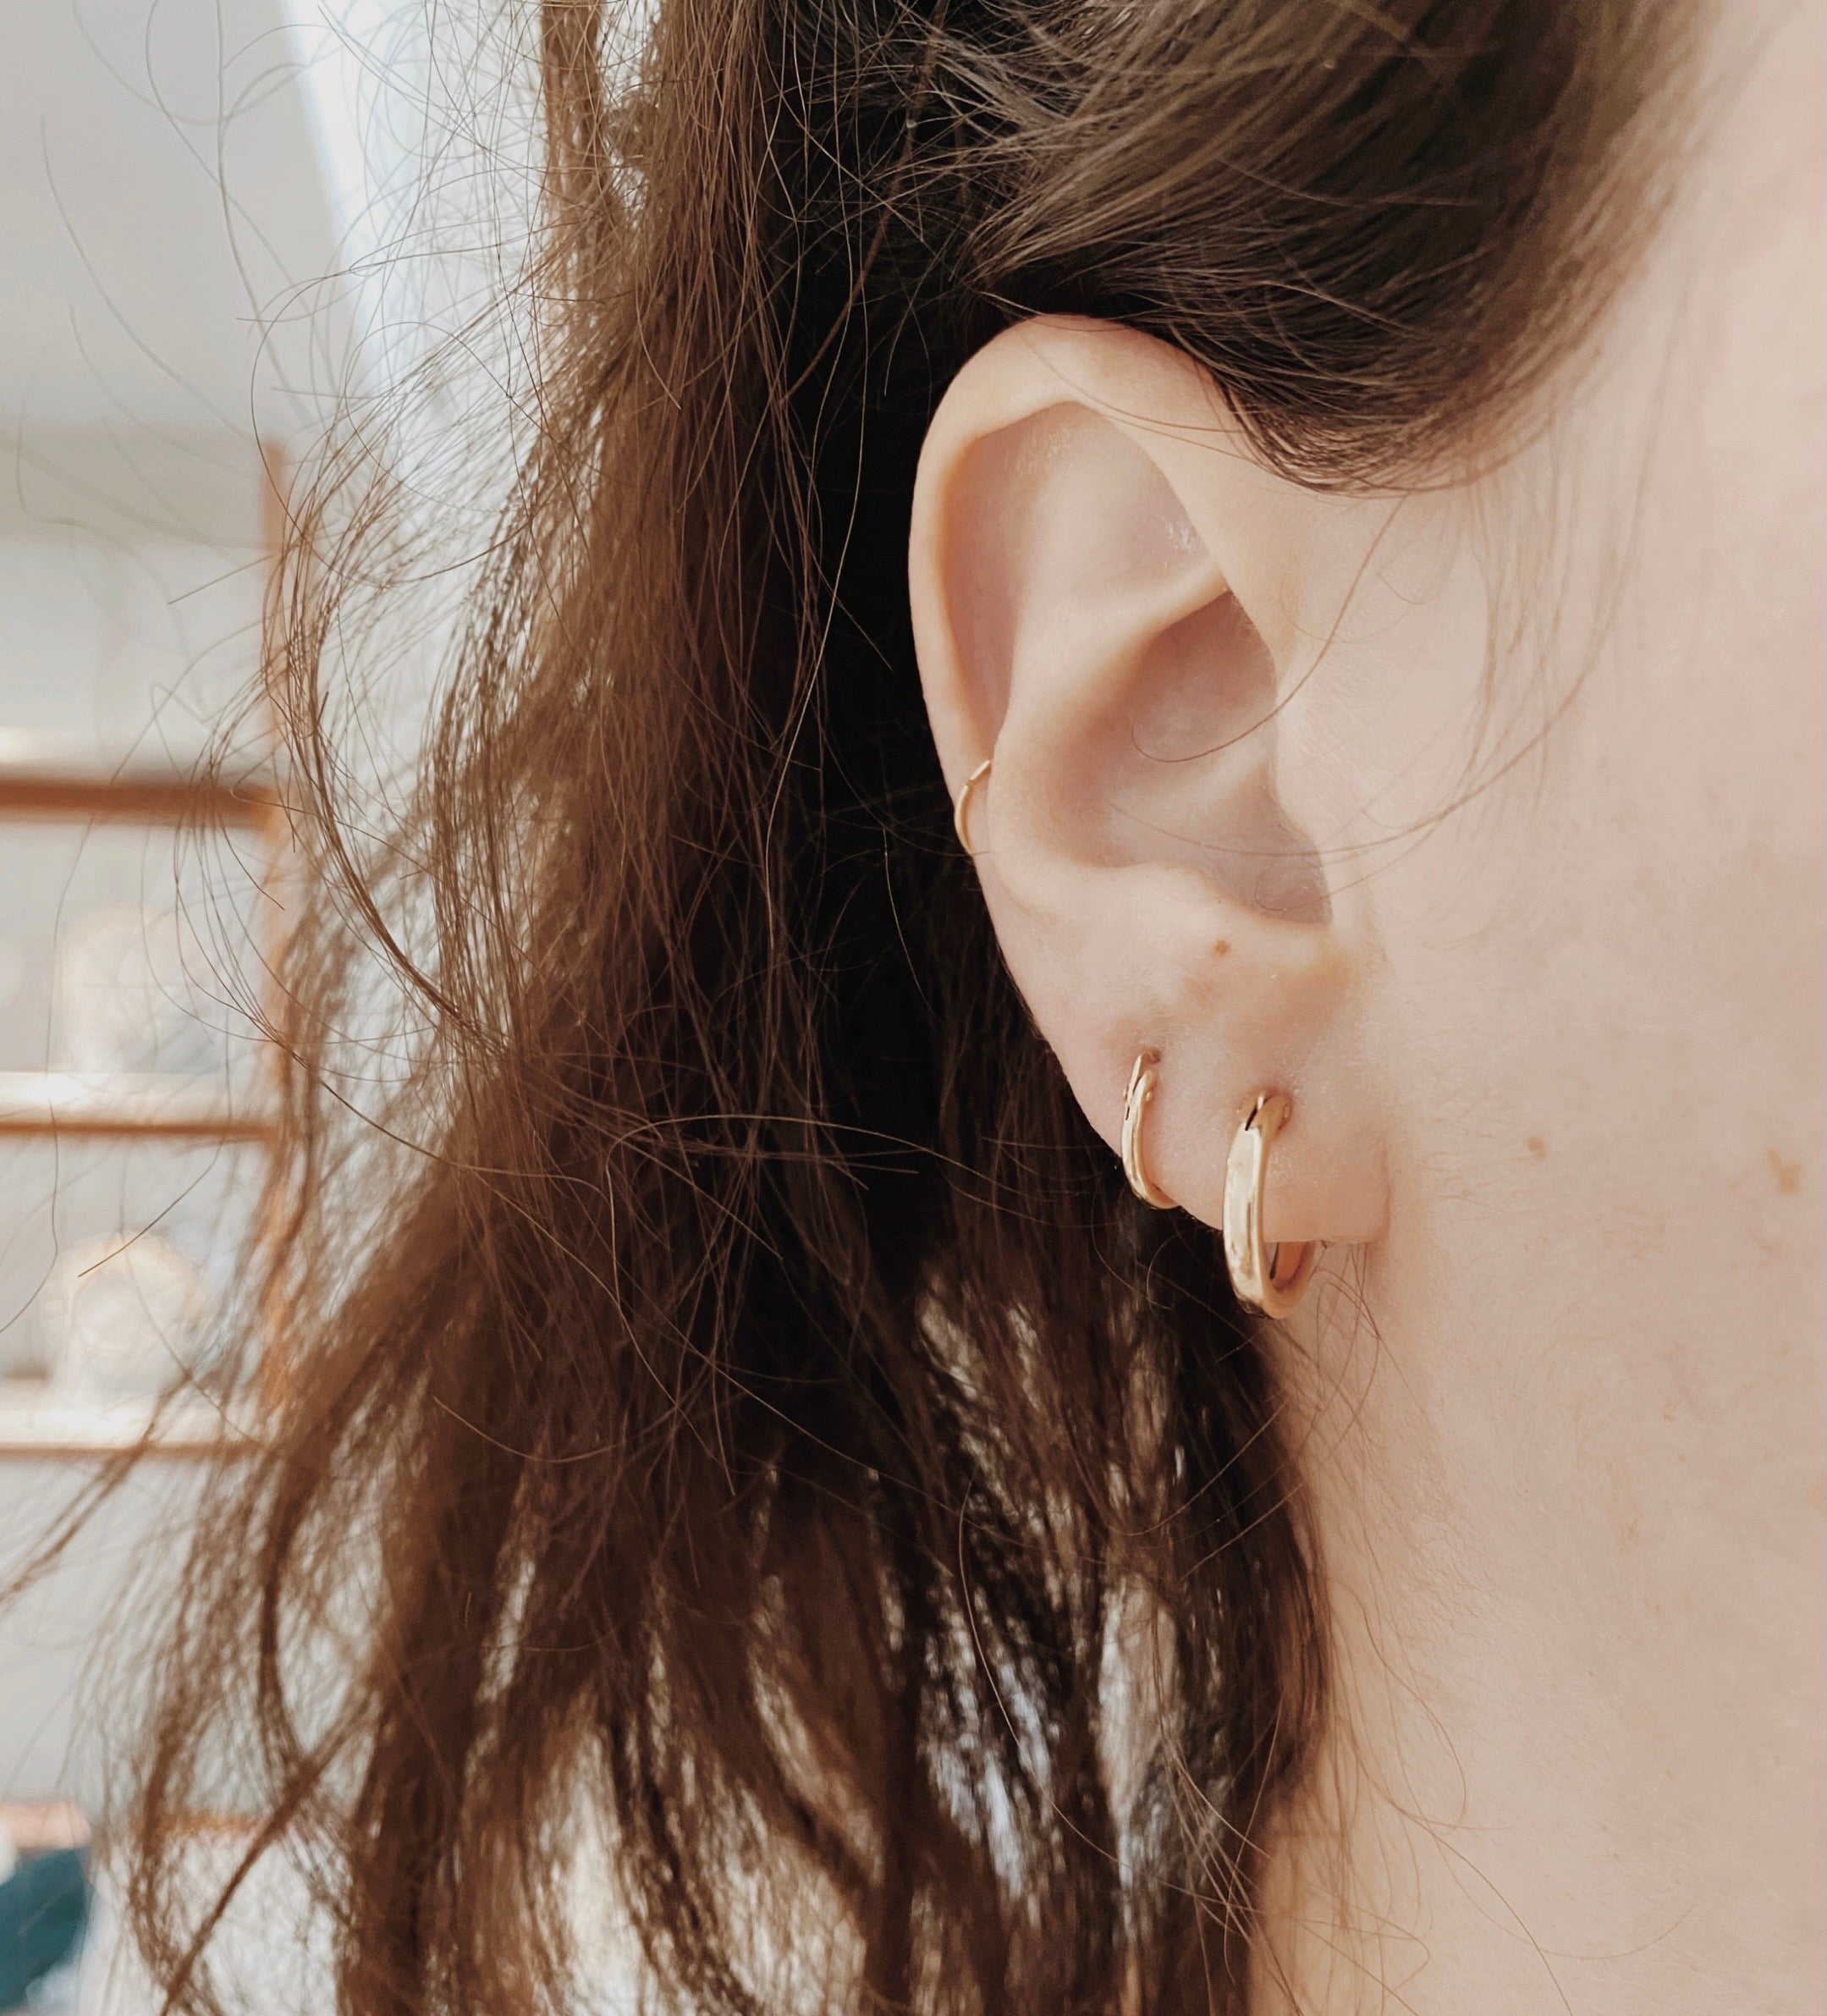 The Perfect Small Hoops